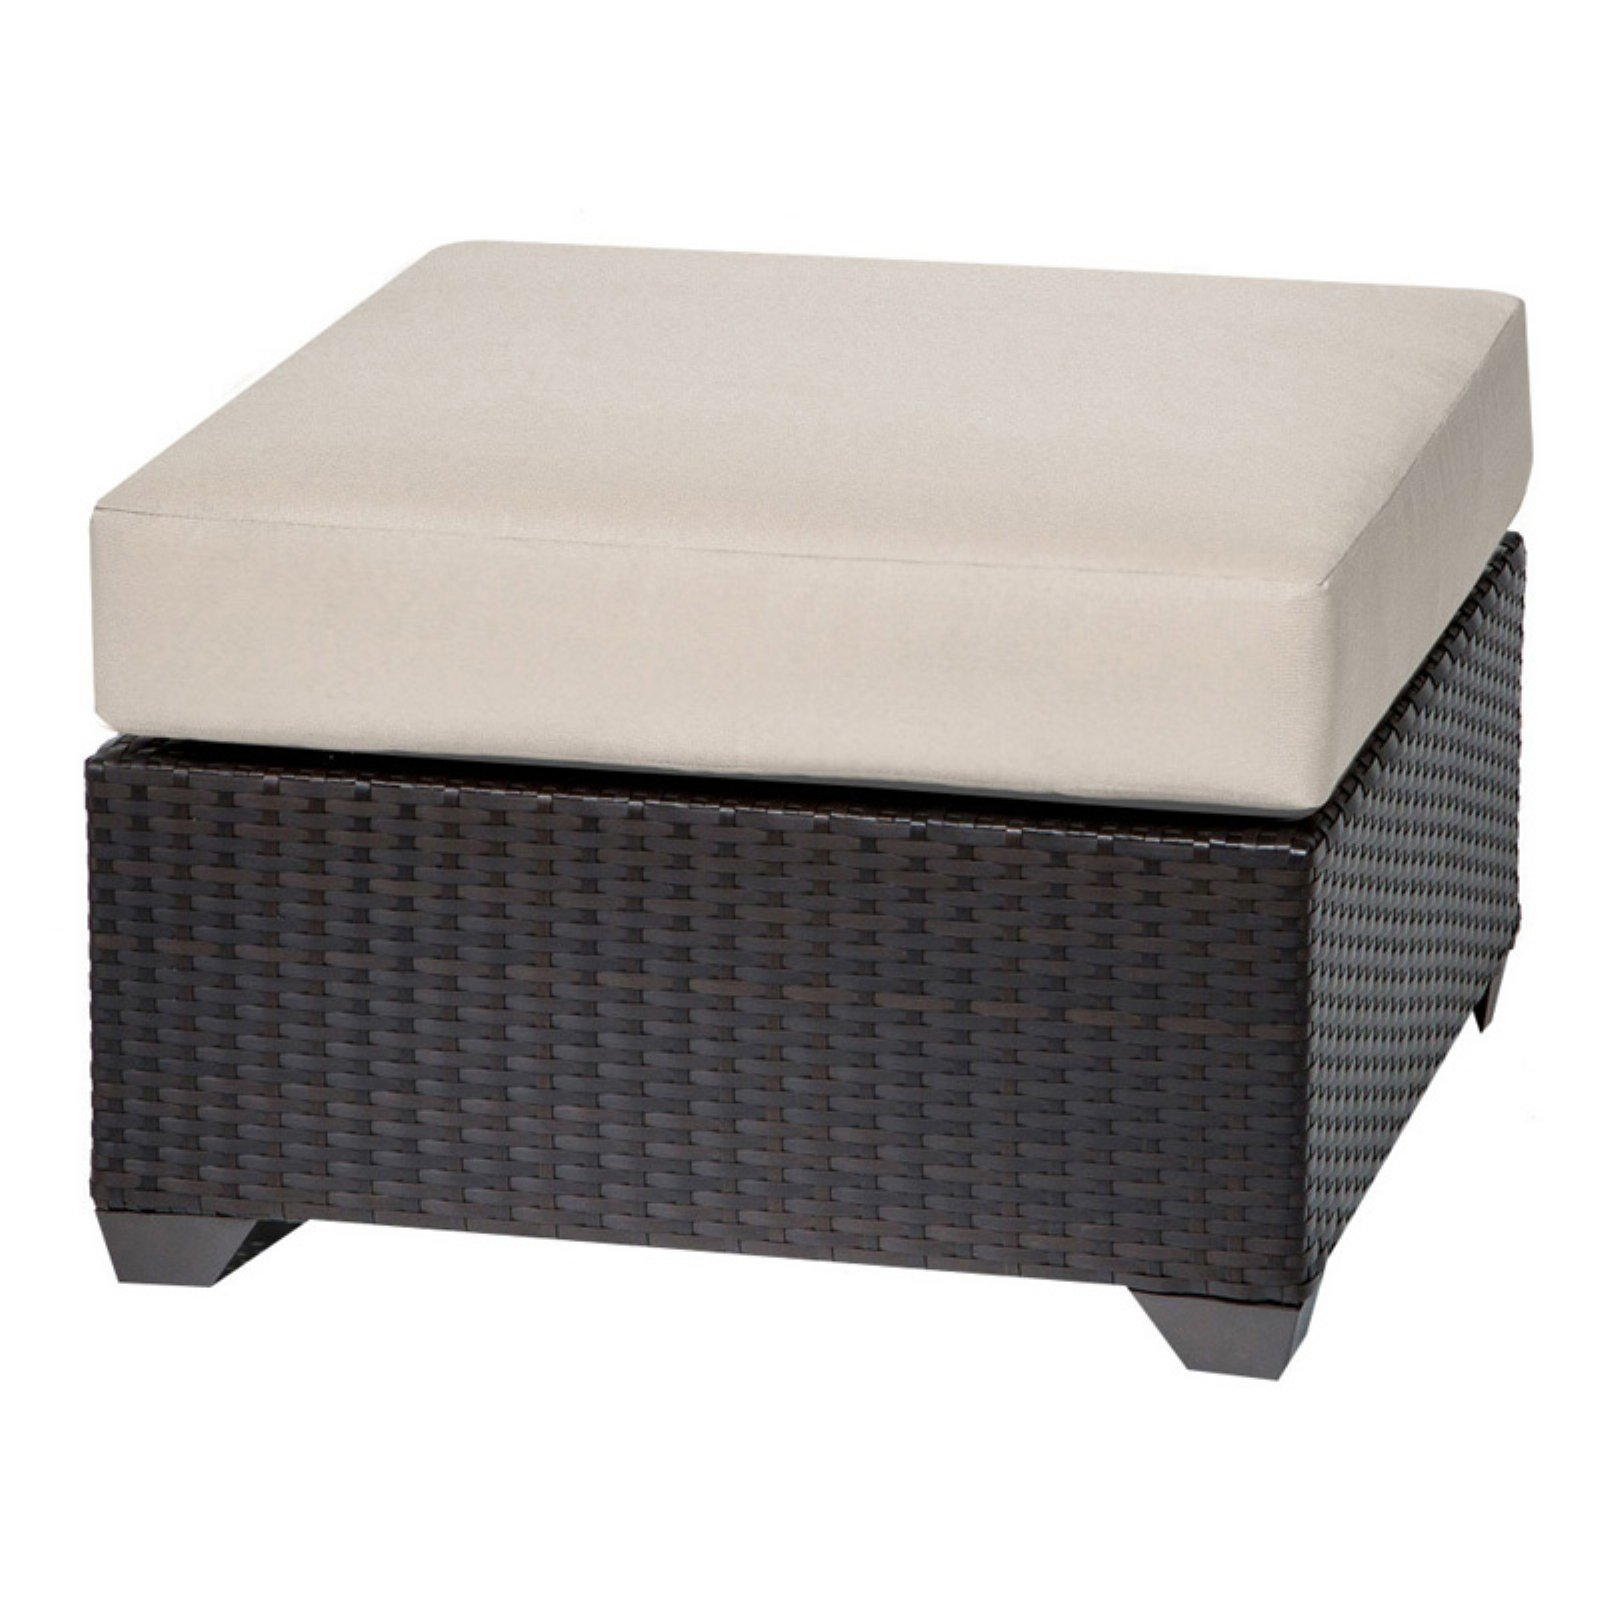 TK Classics Barbados Wicker Outdoor Ottoman - Set of 2 Cushion Covers